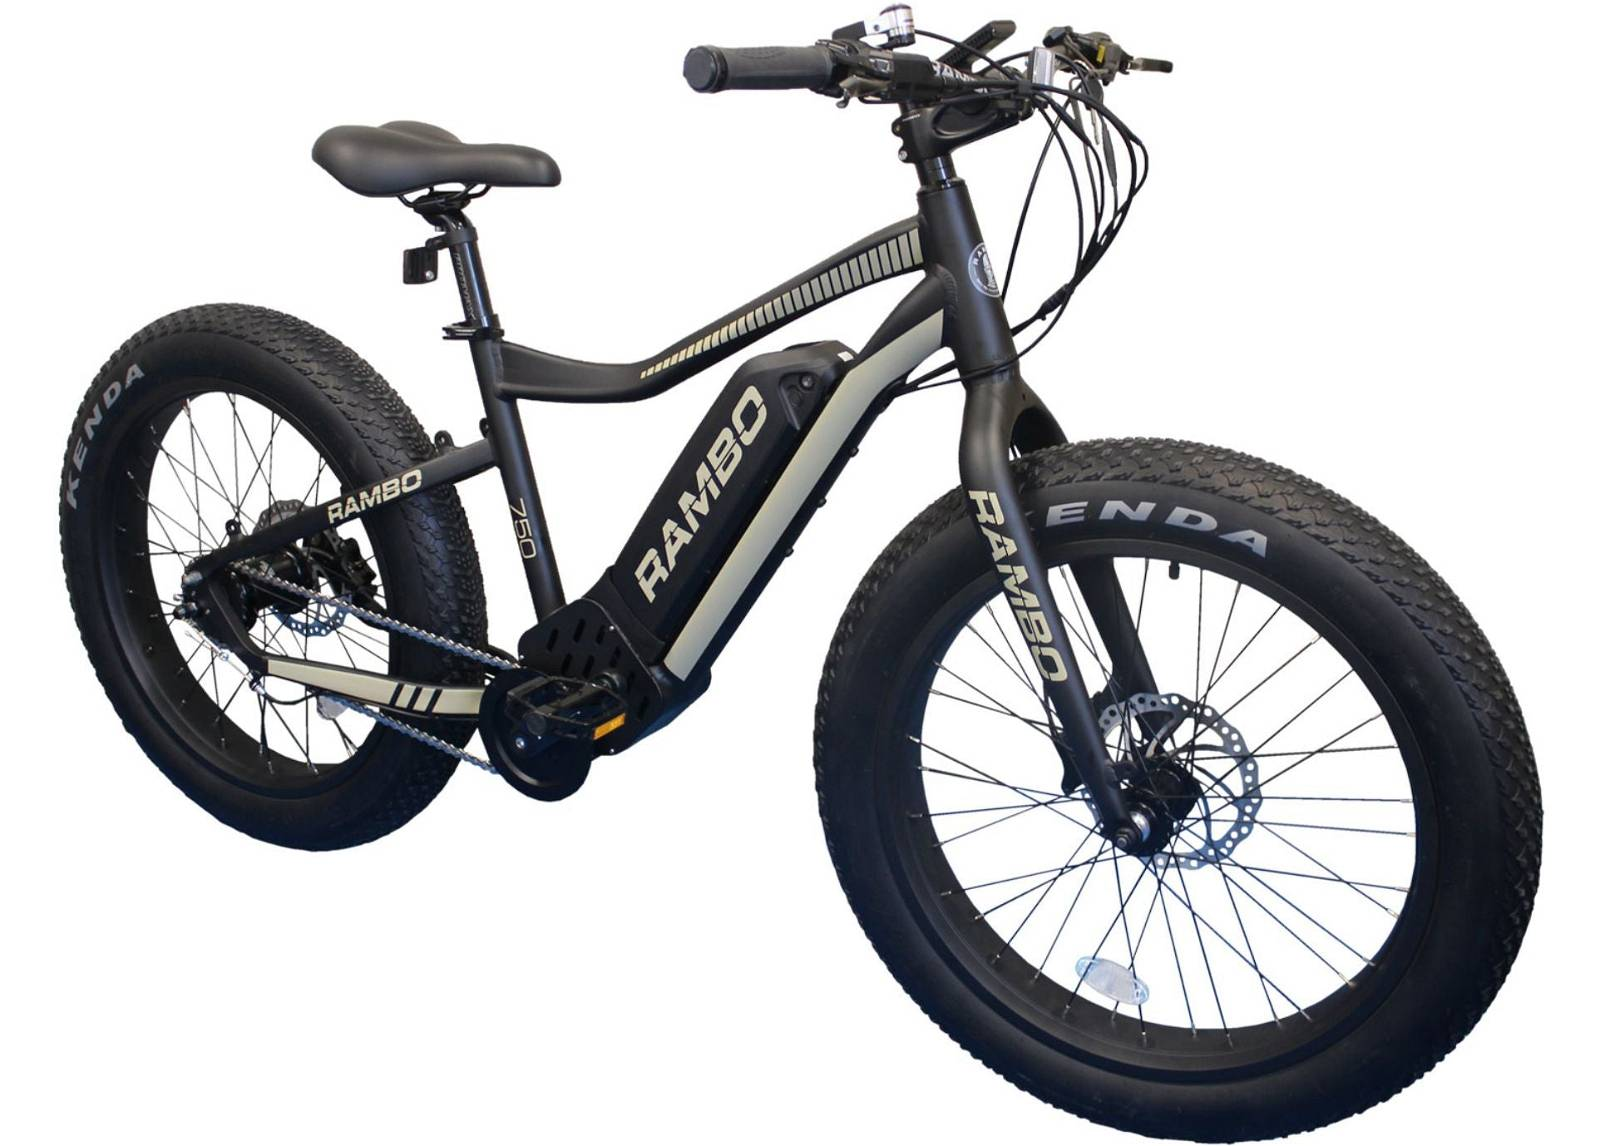 Rambo Ryder Hunting Electric Bike Review